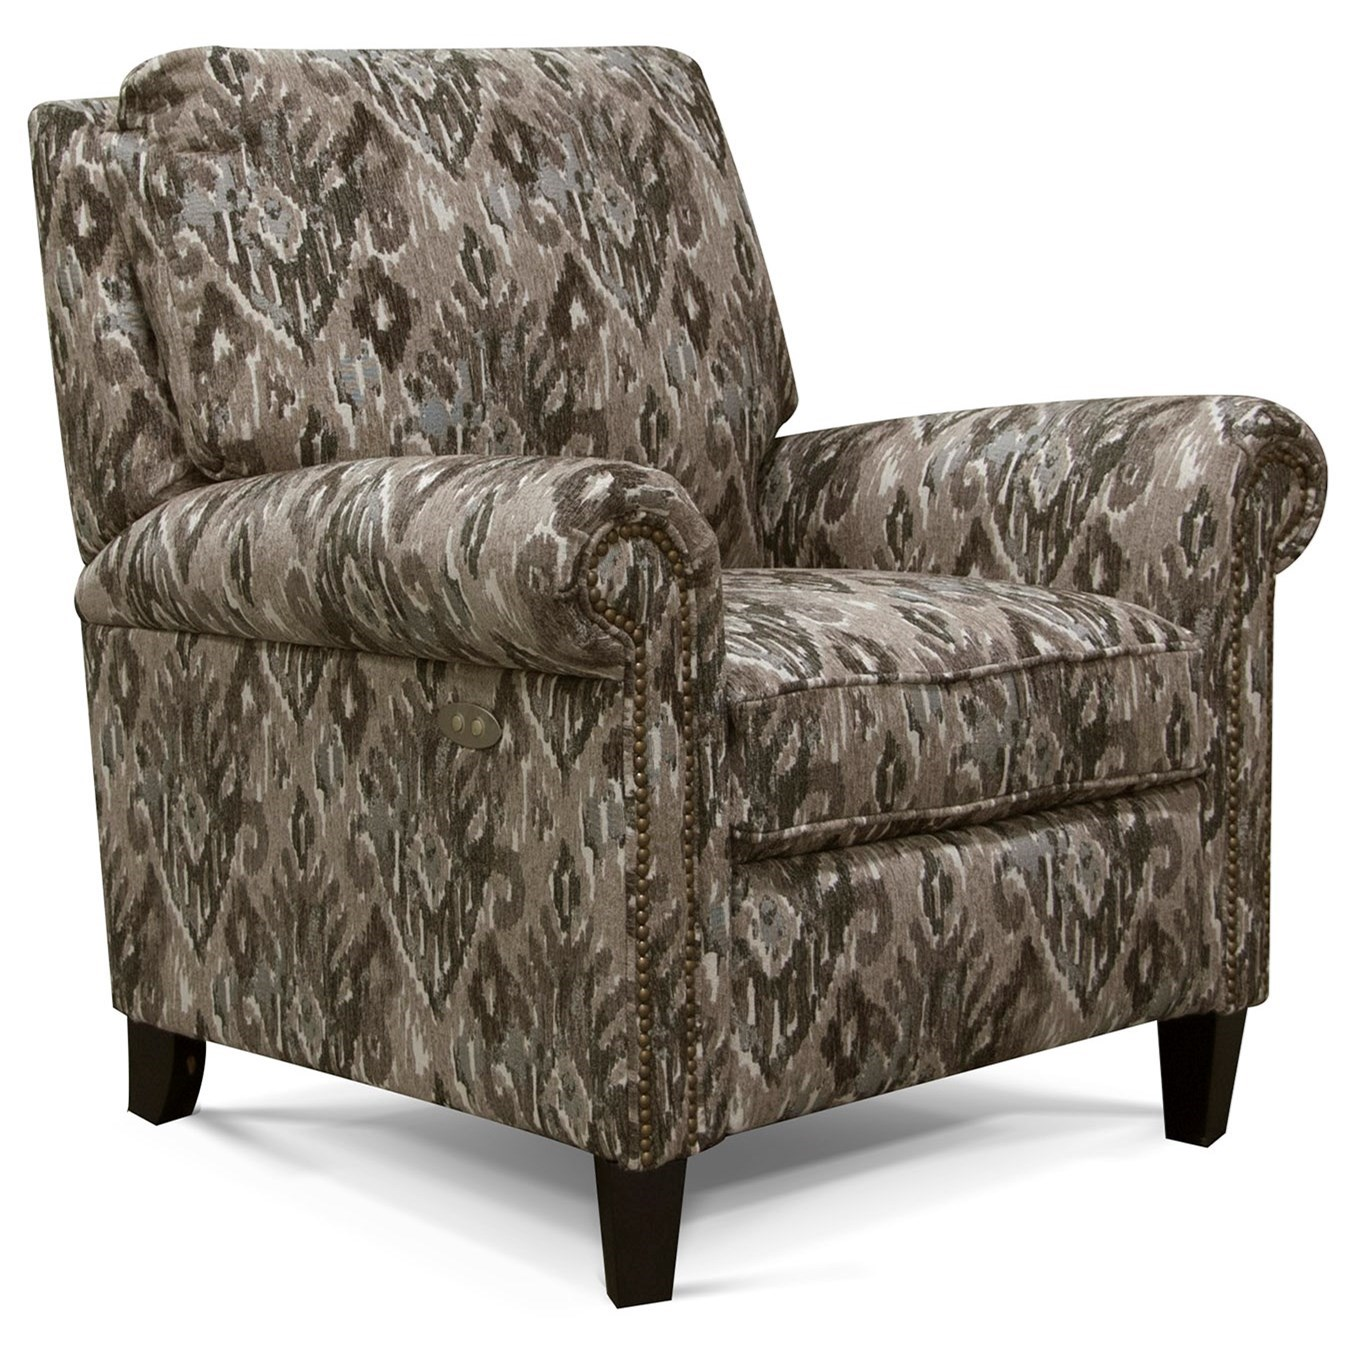 Furniture With Prices: England Price High-Leg Reclining Chair With Nailheads